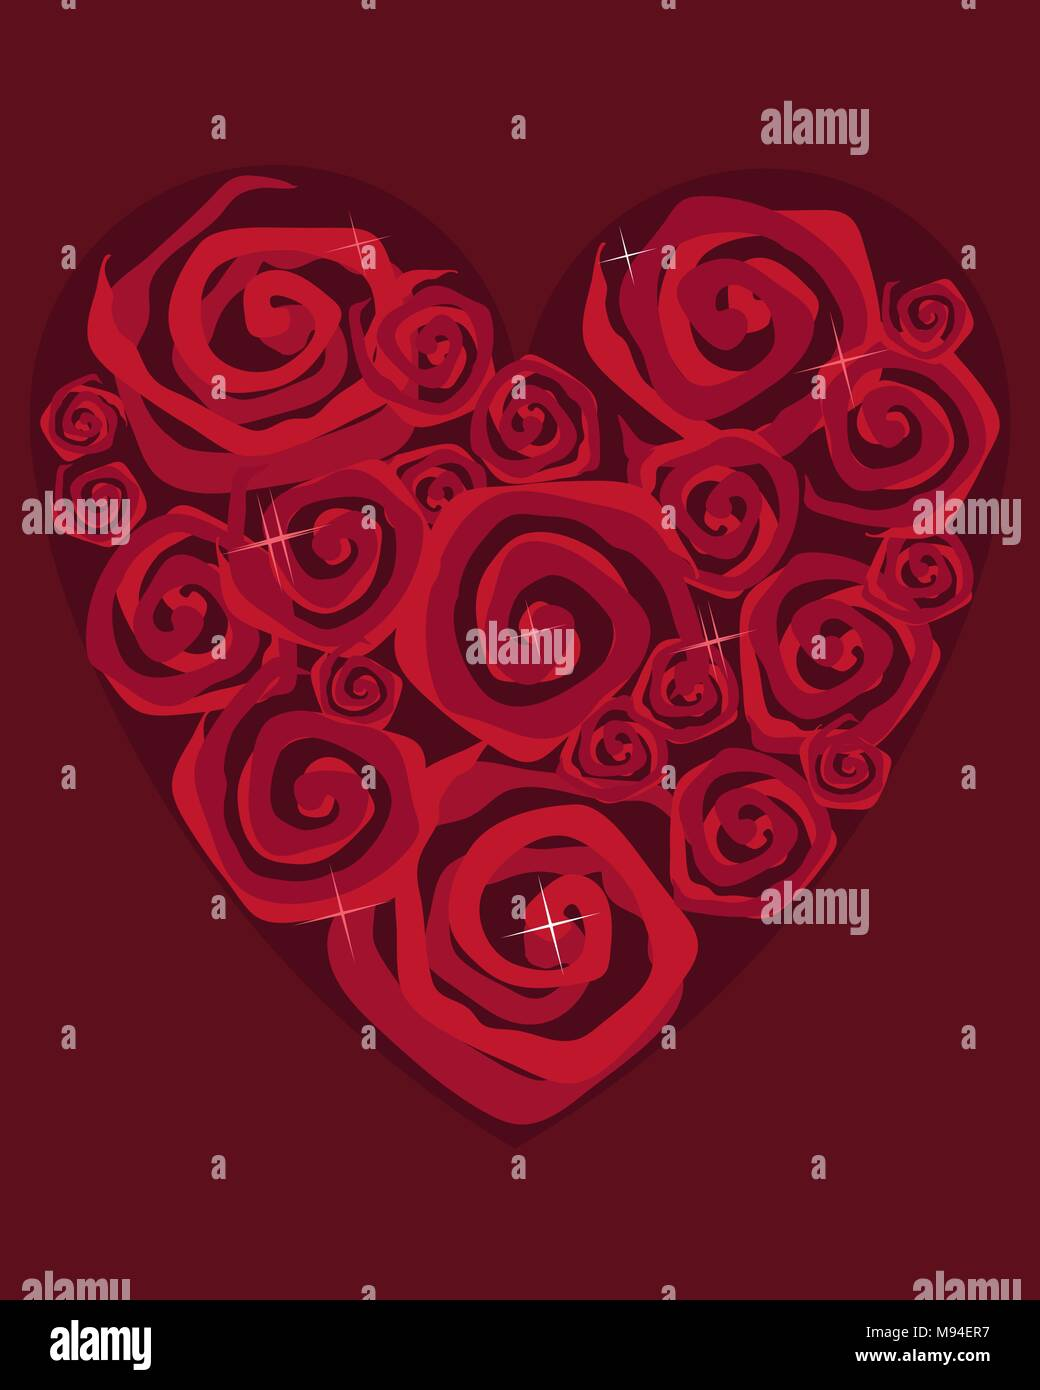 An Illustration Of A Valentine Greeting Card Design With Stylized